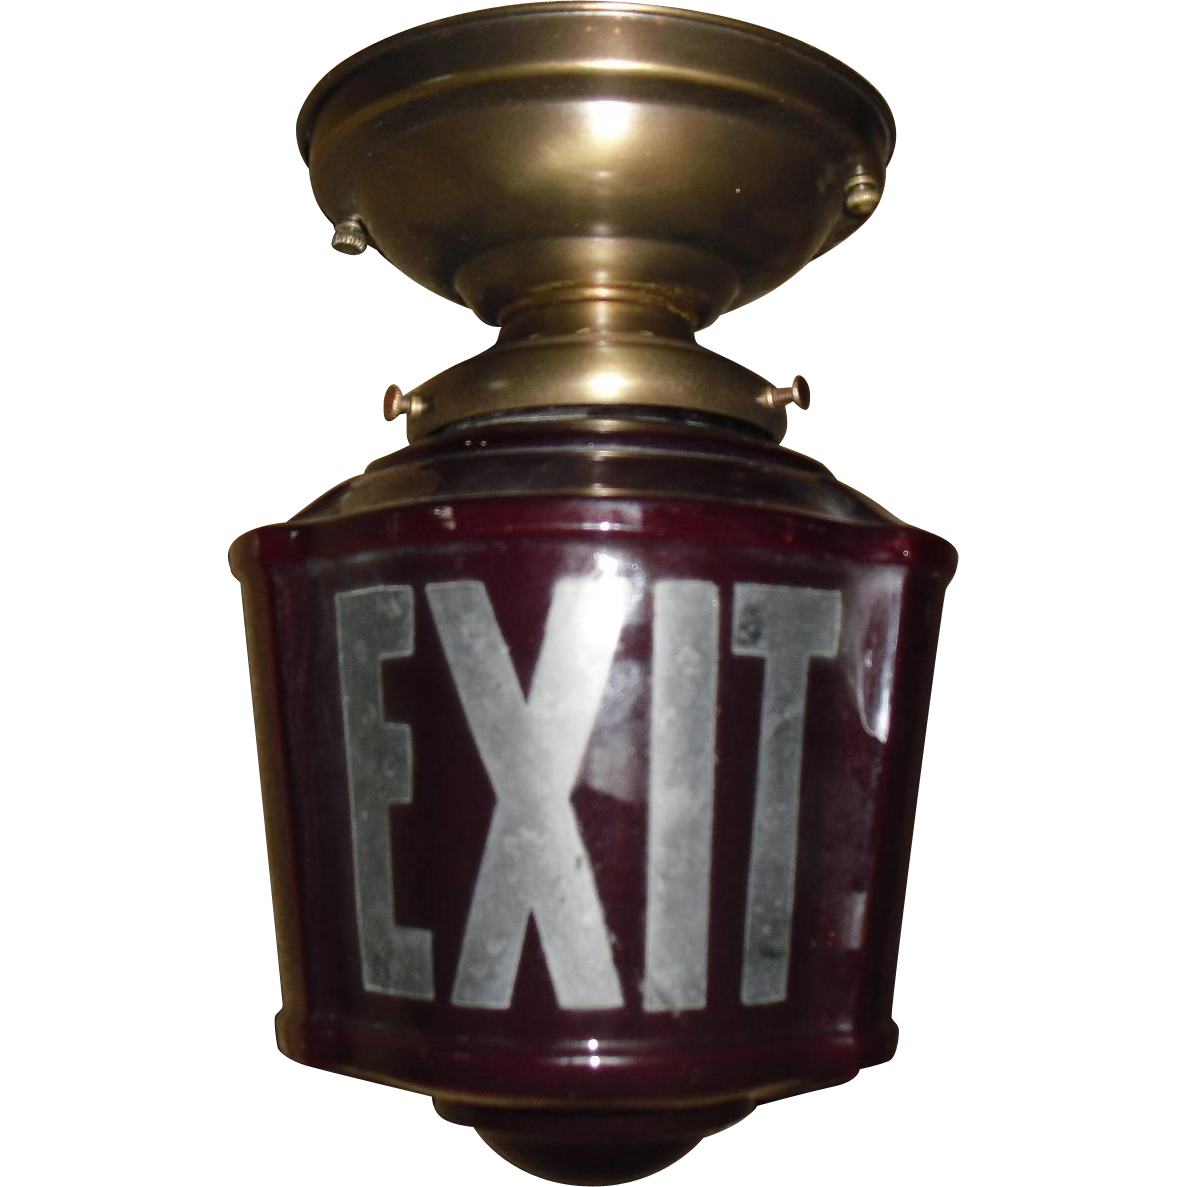 Ruby Red 3 Sided Exit Ceiling Light in Brass Fixture